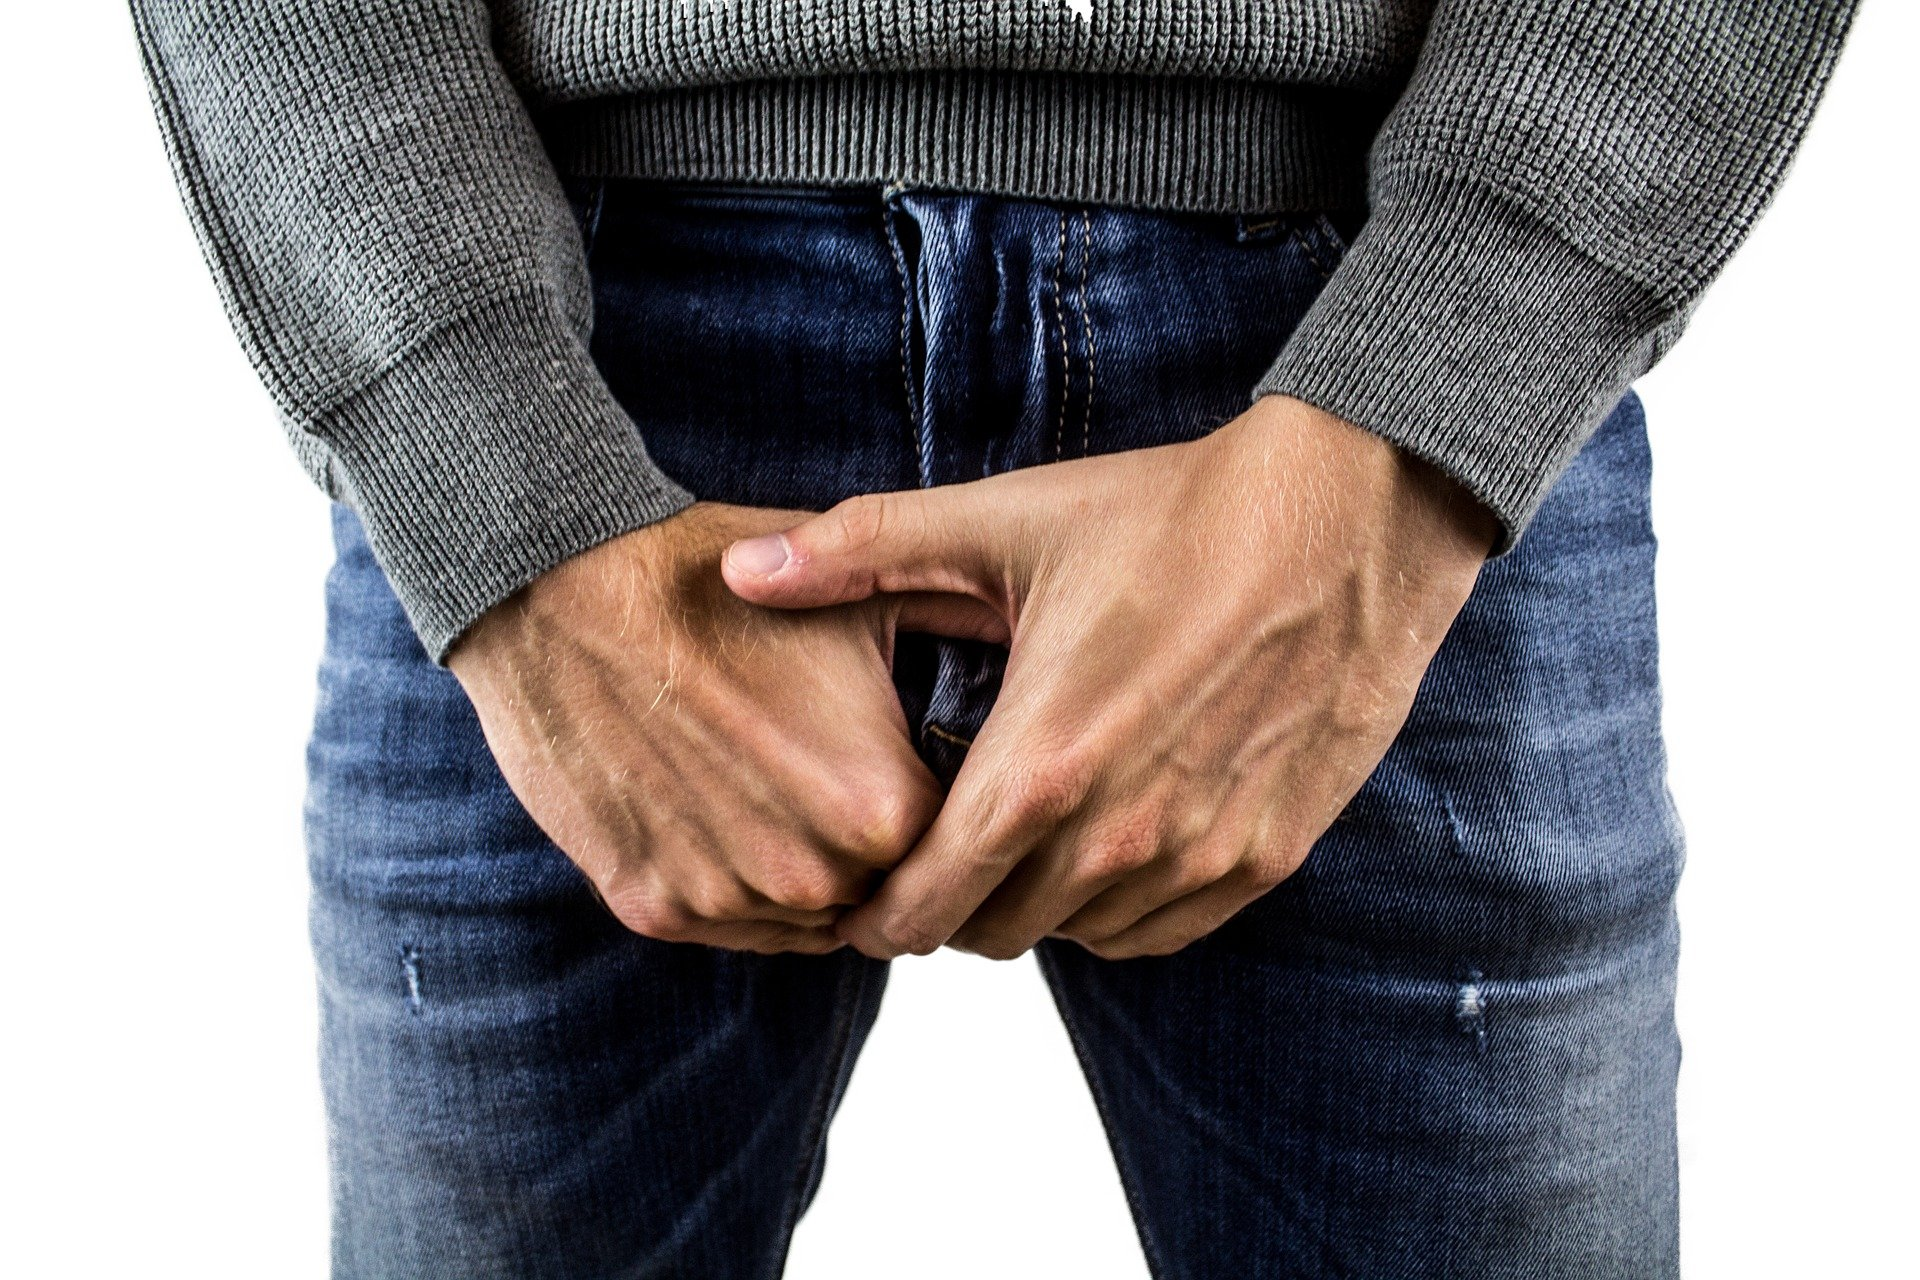 Understanding Urethral Stricture Disease: 7 Symptoms to Watch Out For